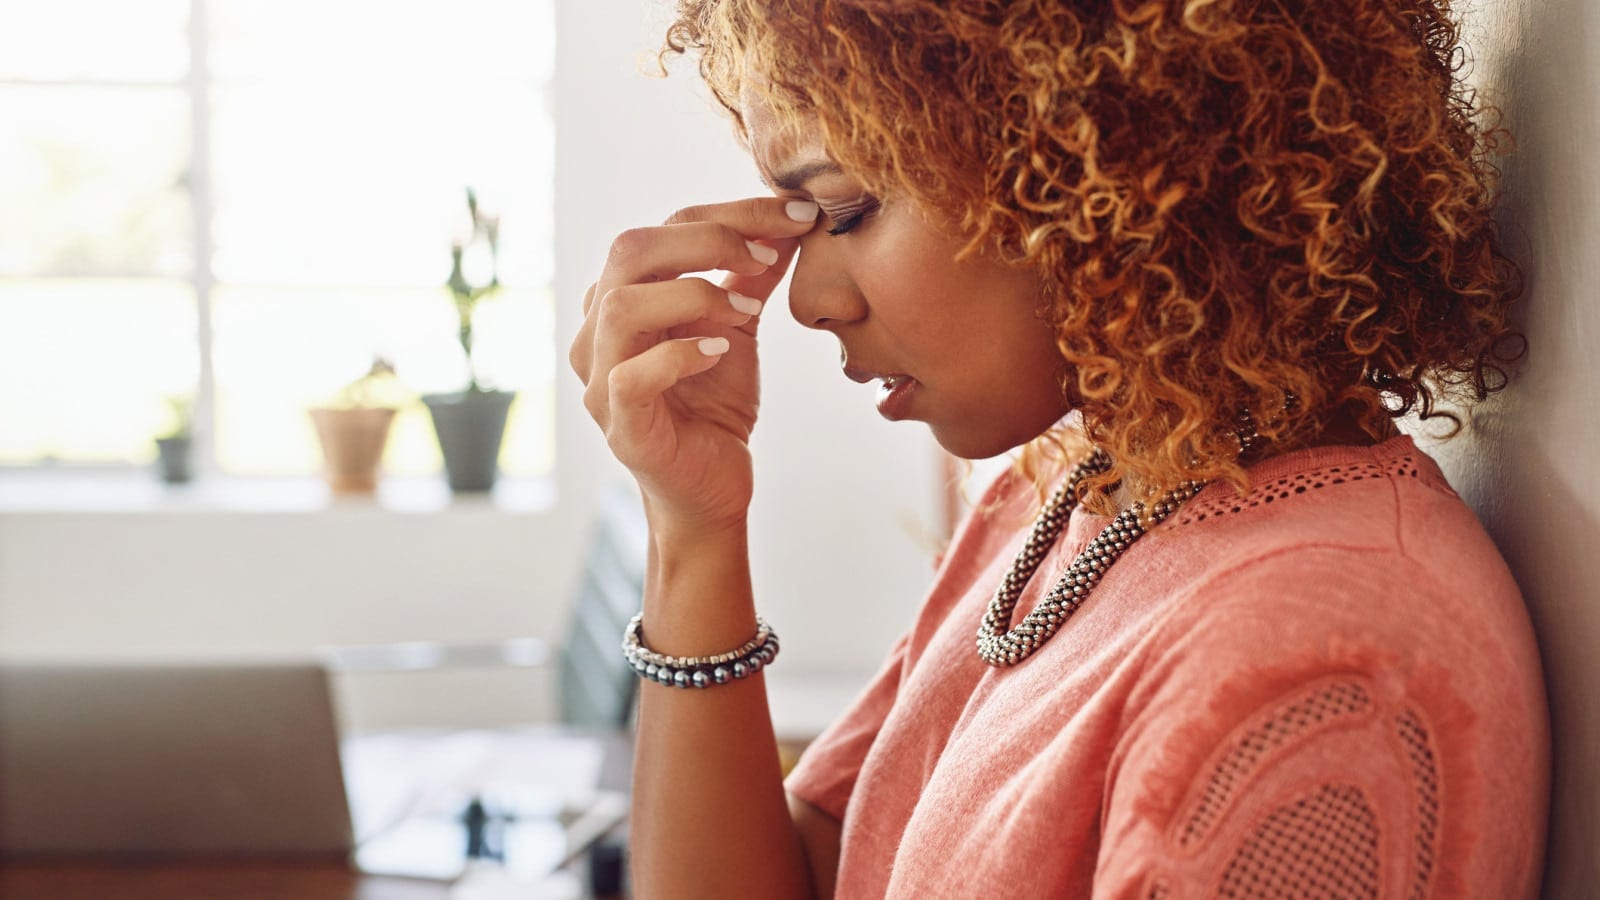 Woman Experiencing A Headache At Work Stock Photo